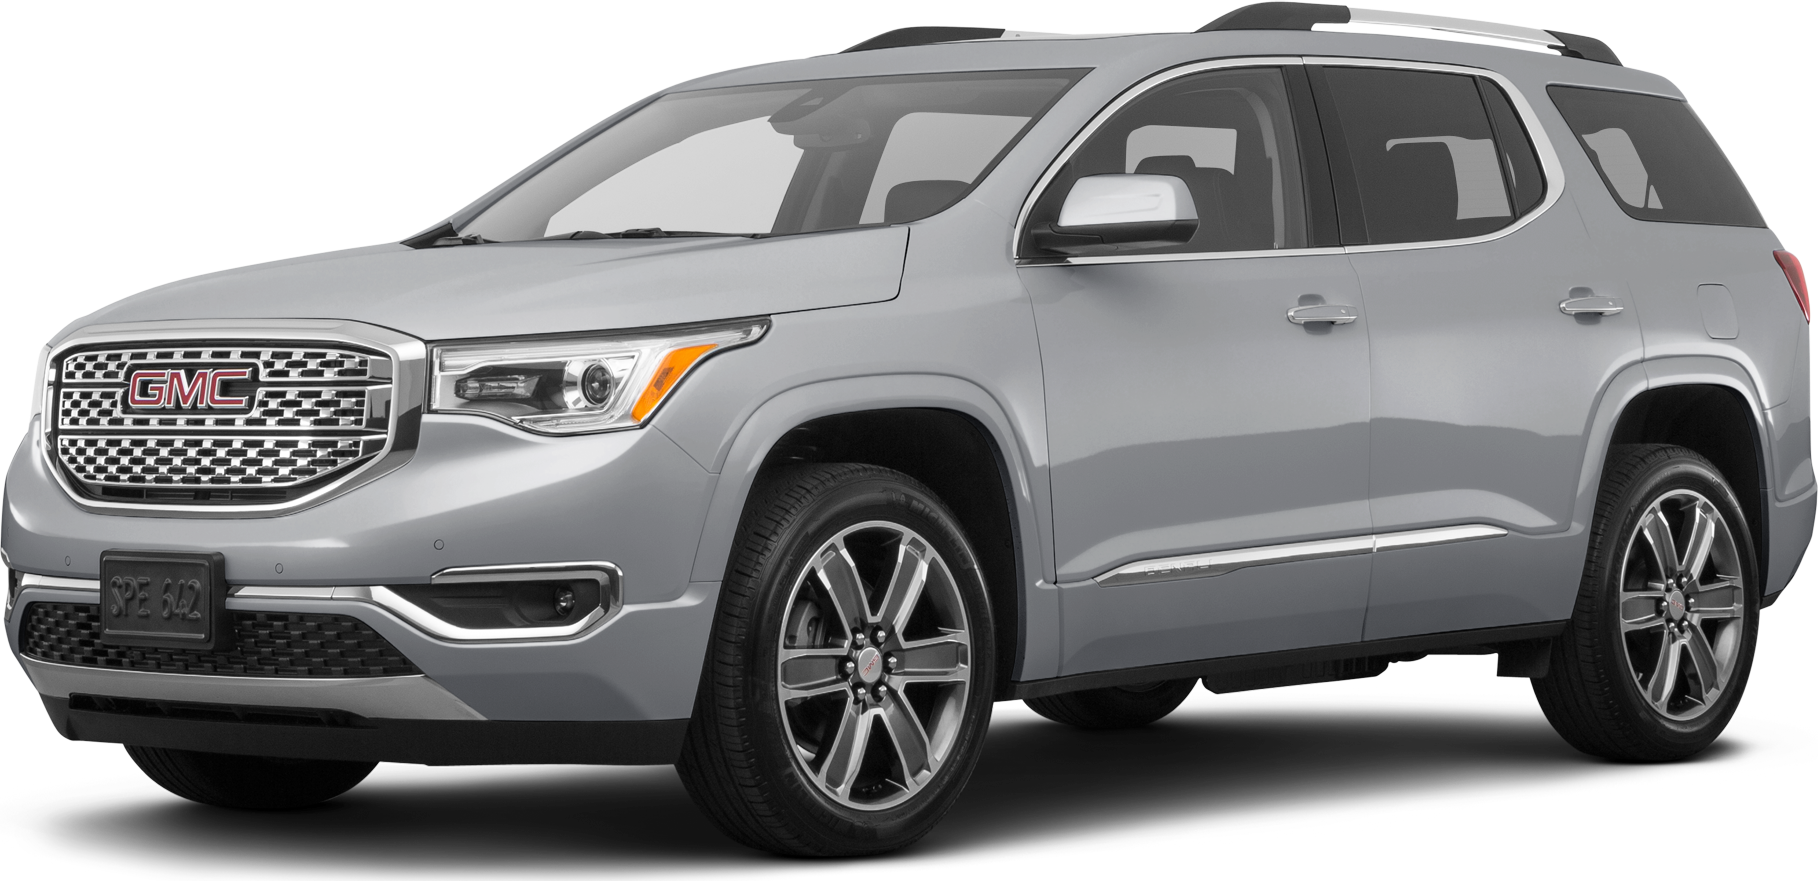 New 2019 Gmc Acadia Denali Prices Kelley Blue Book